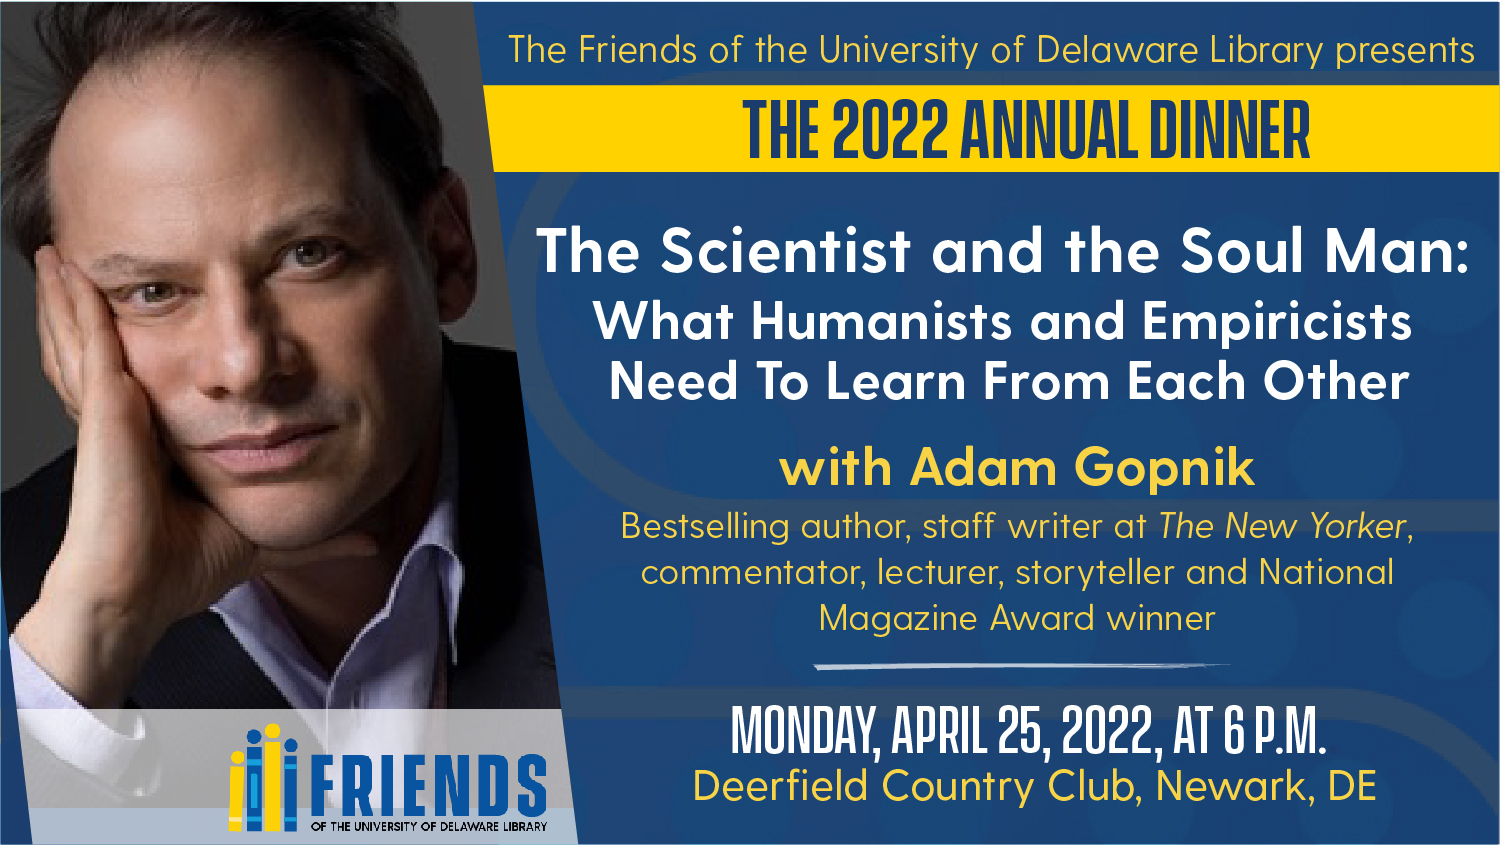 Friends of the University of Delaware Library 2022 Annual Dinner